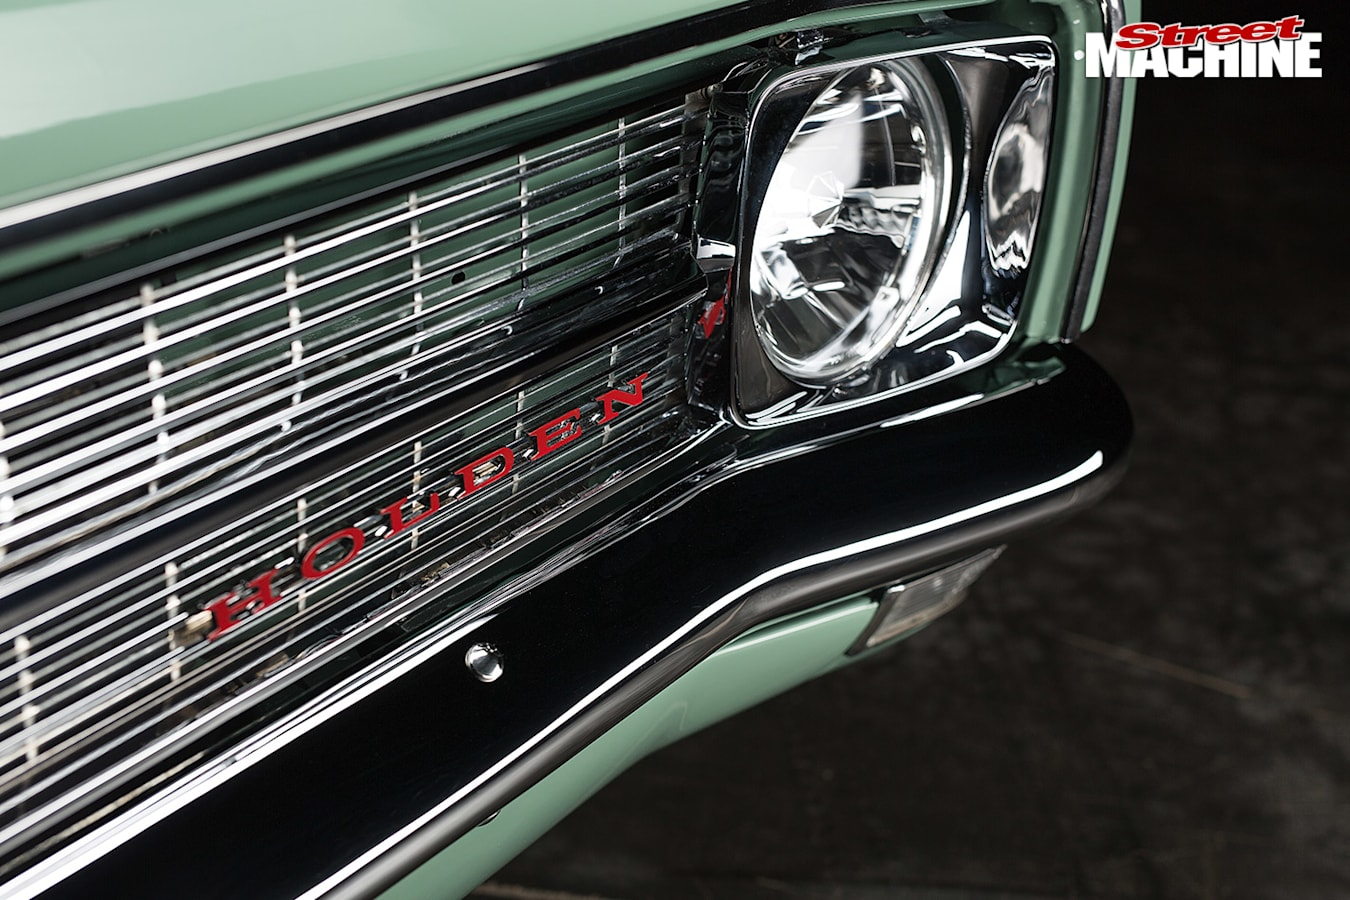 Holden HK wagon grille